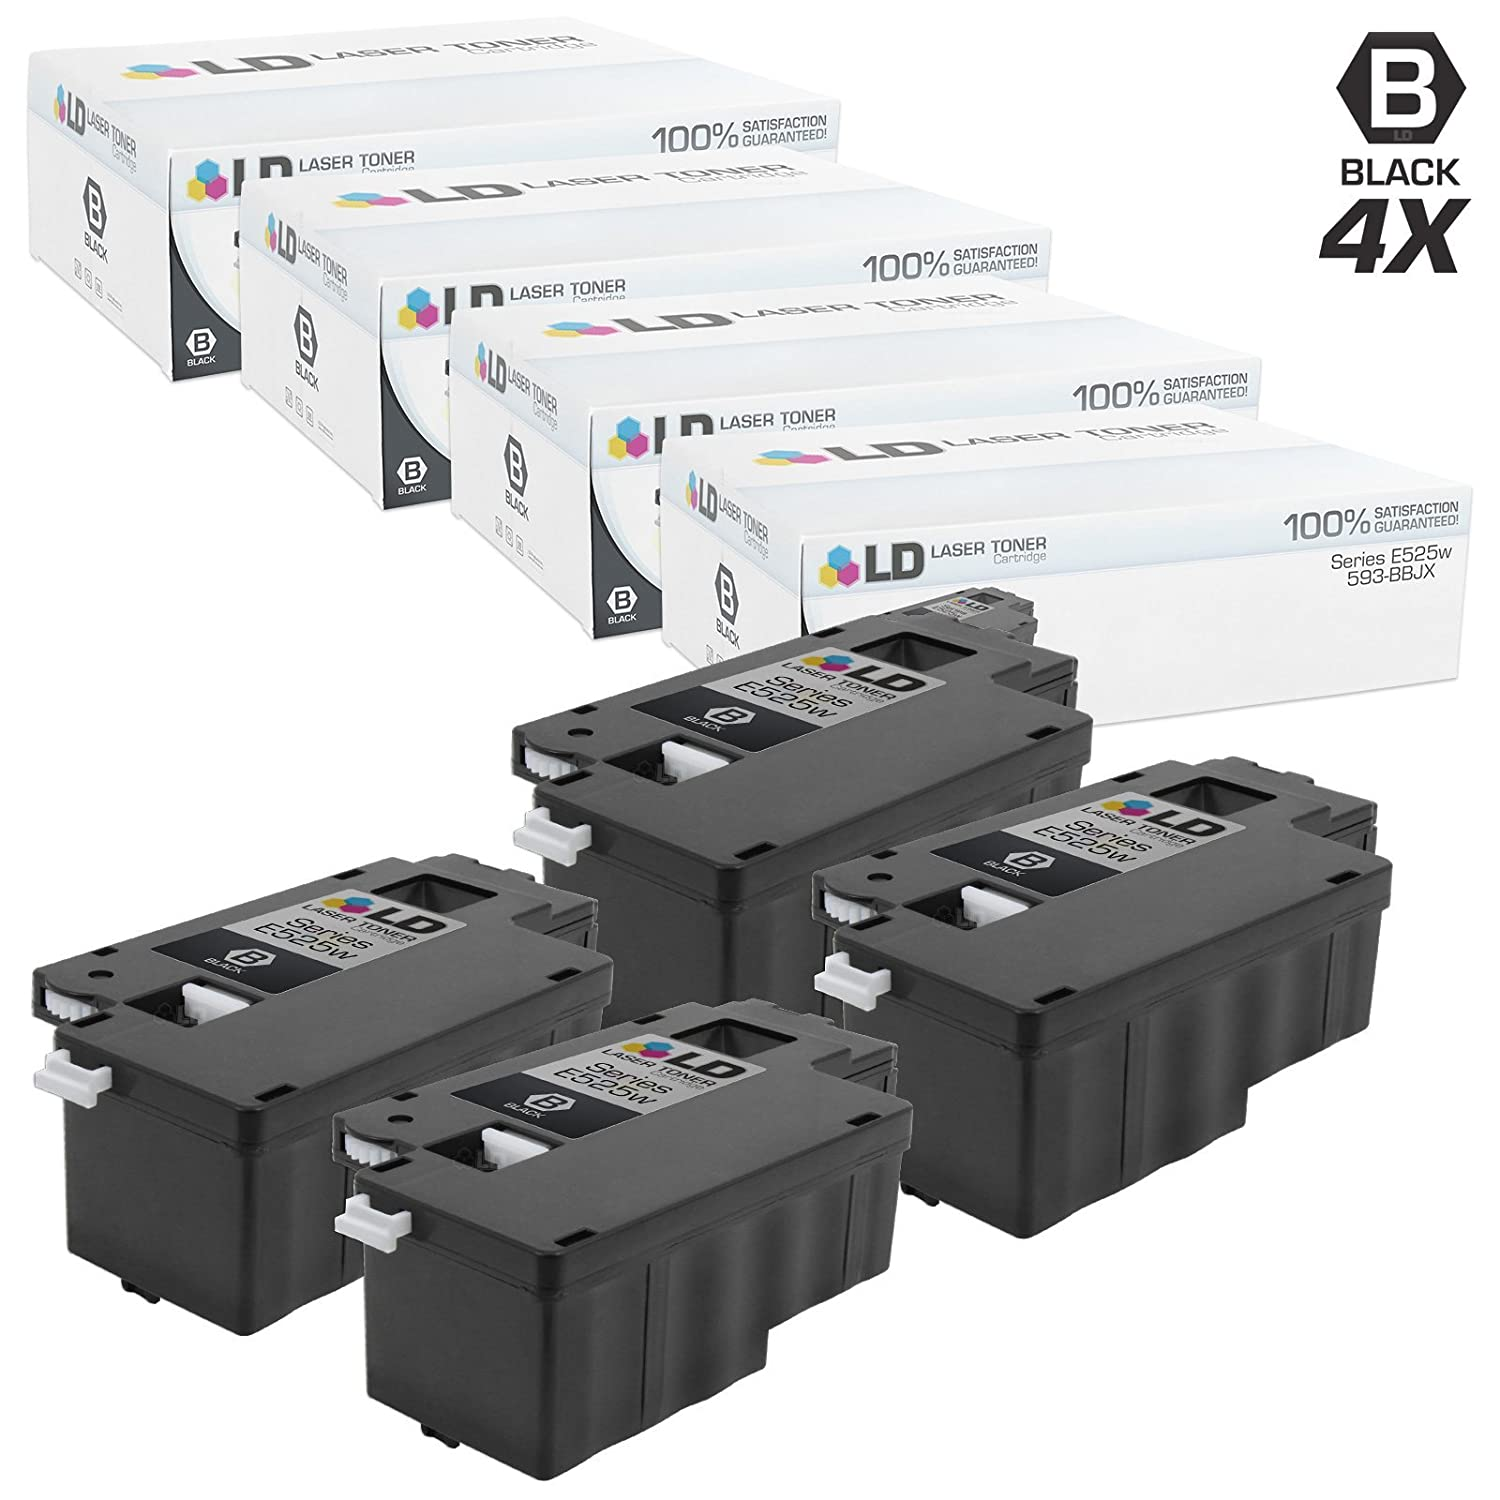 Black, 4-Pack LD Compatible Toner Cartridge Replacement for Dell 593-BBJX DPV4T